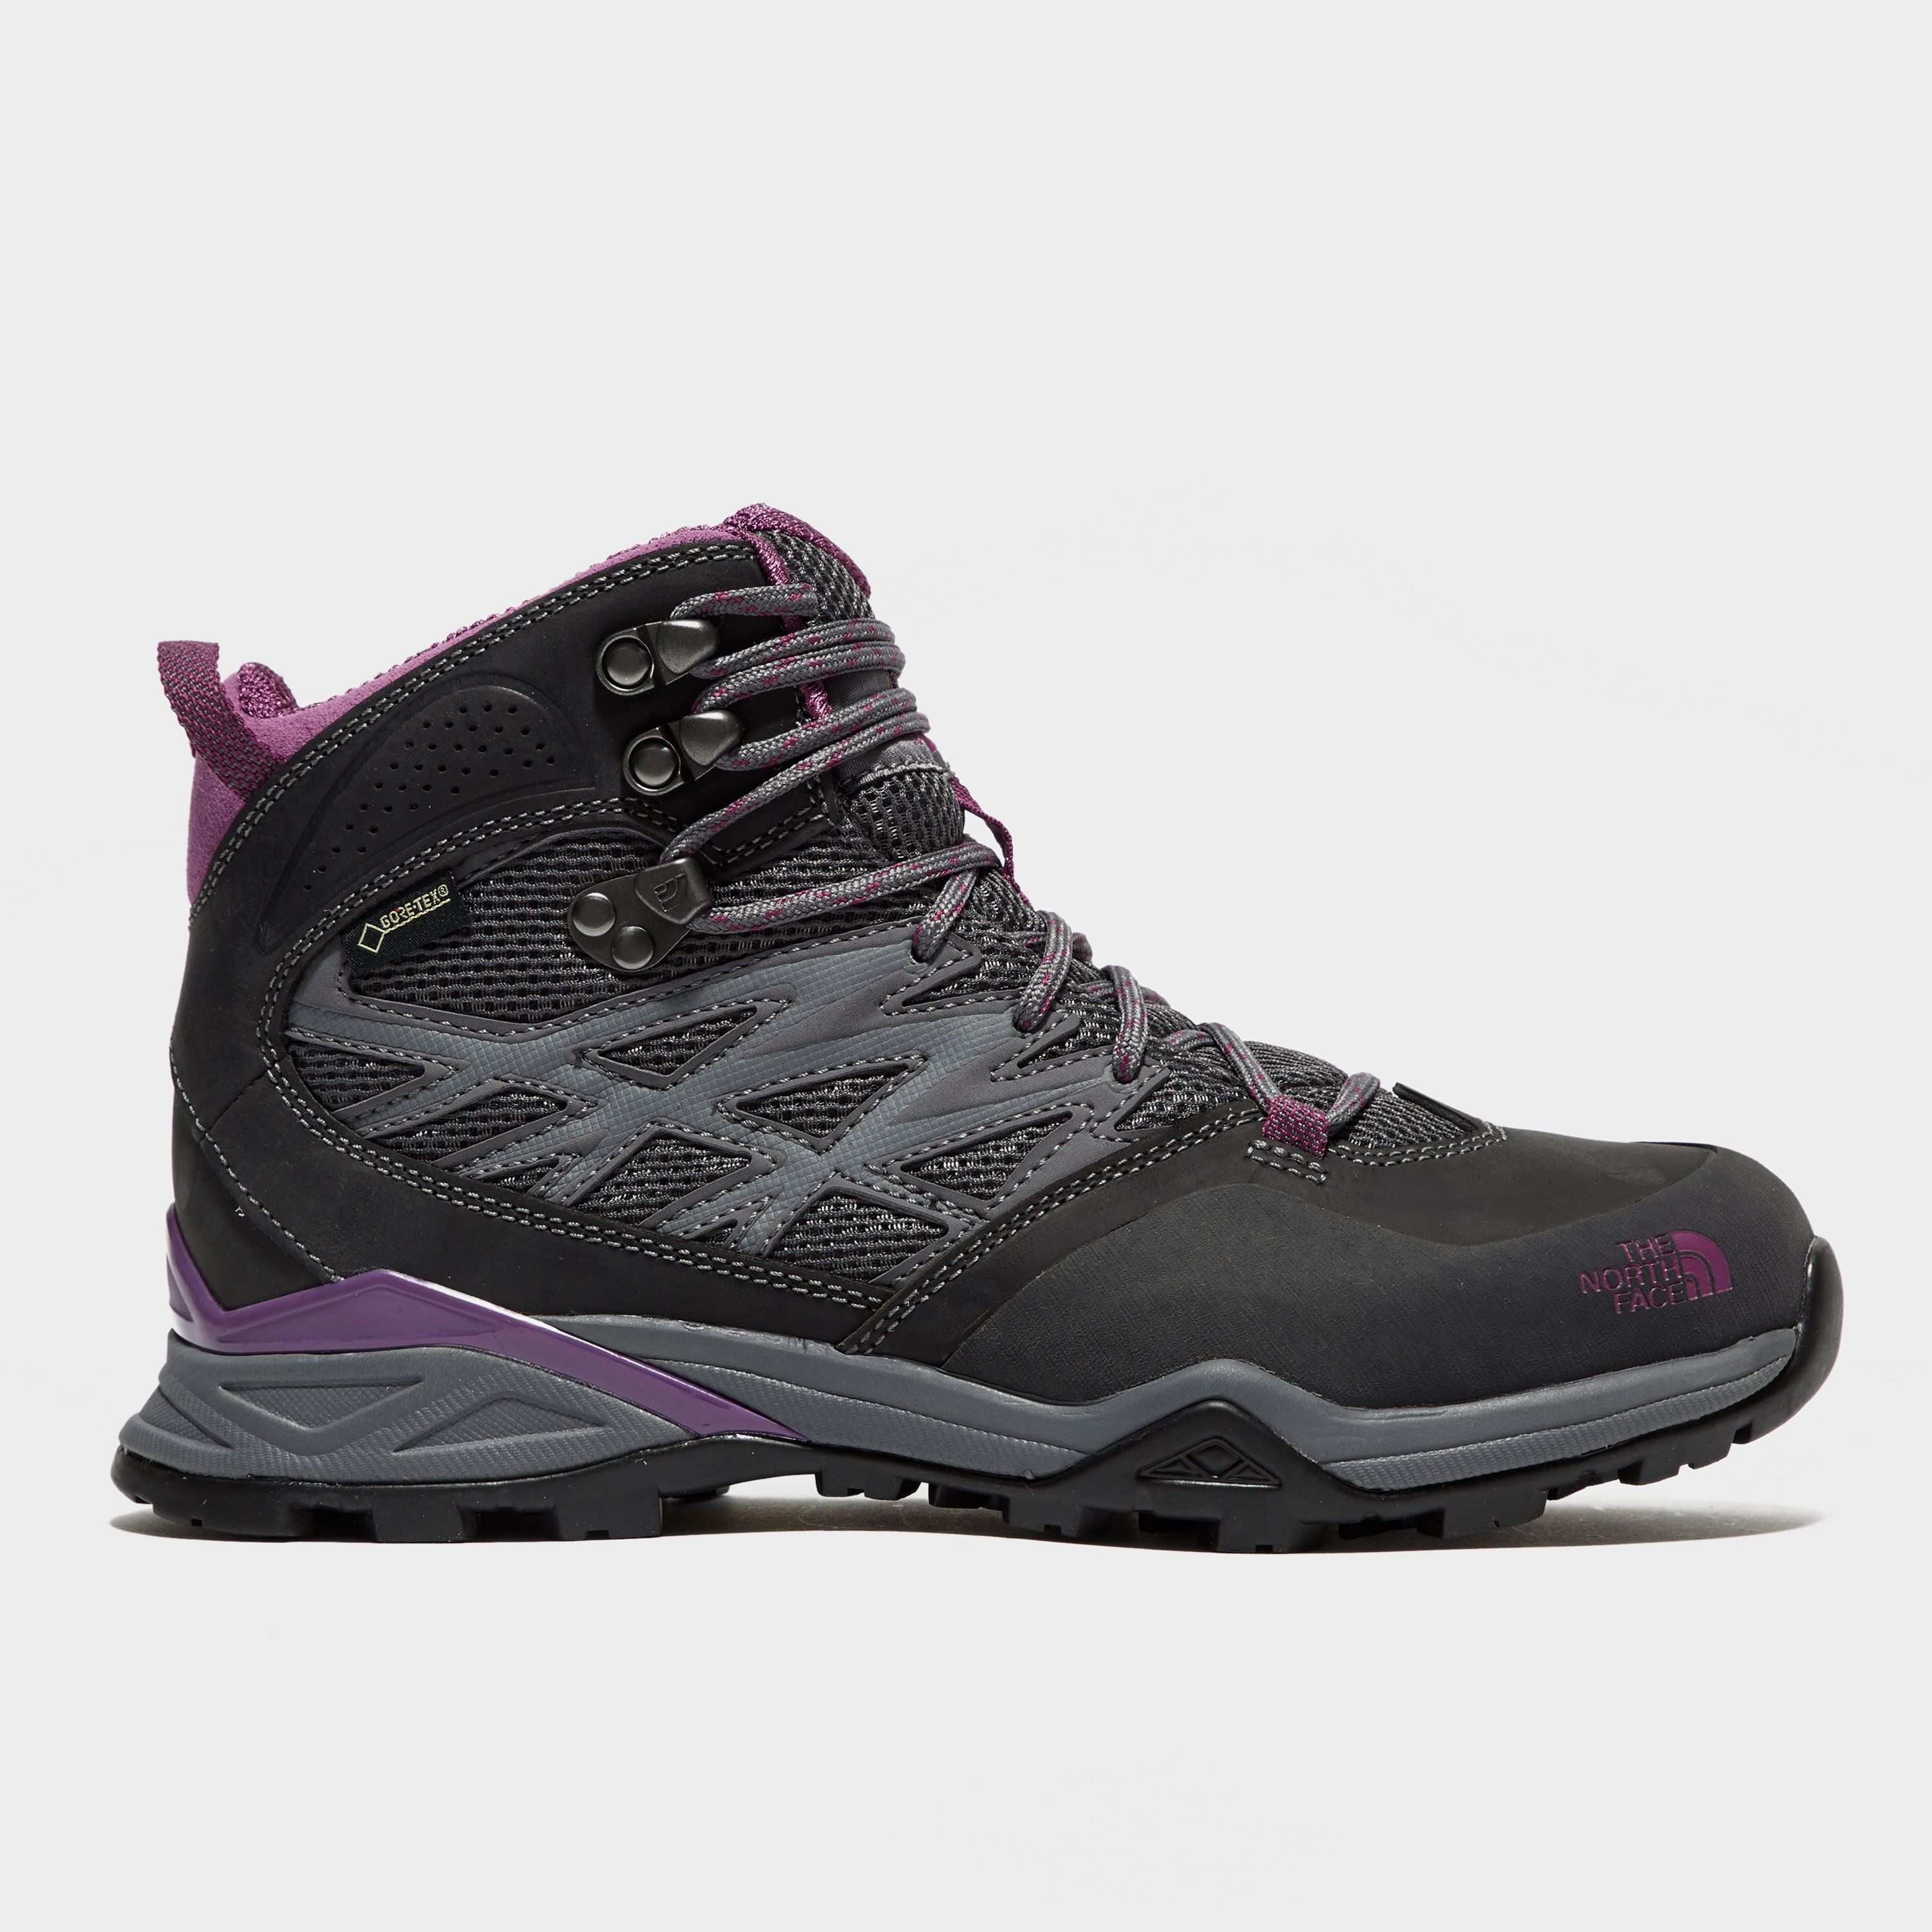 THE NORTH FACE Women's Hedgehog Hike GORE-TEX® Walking Boots